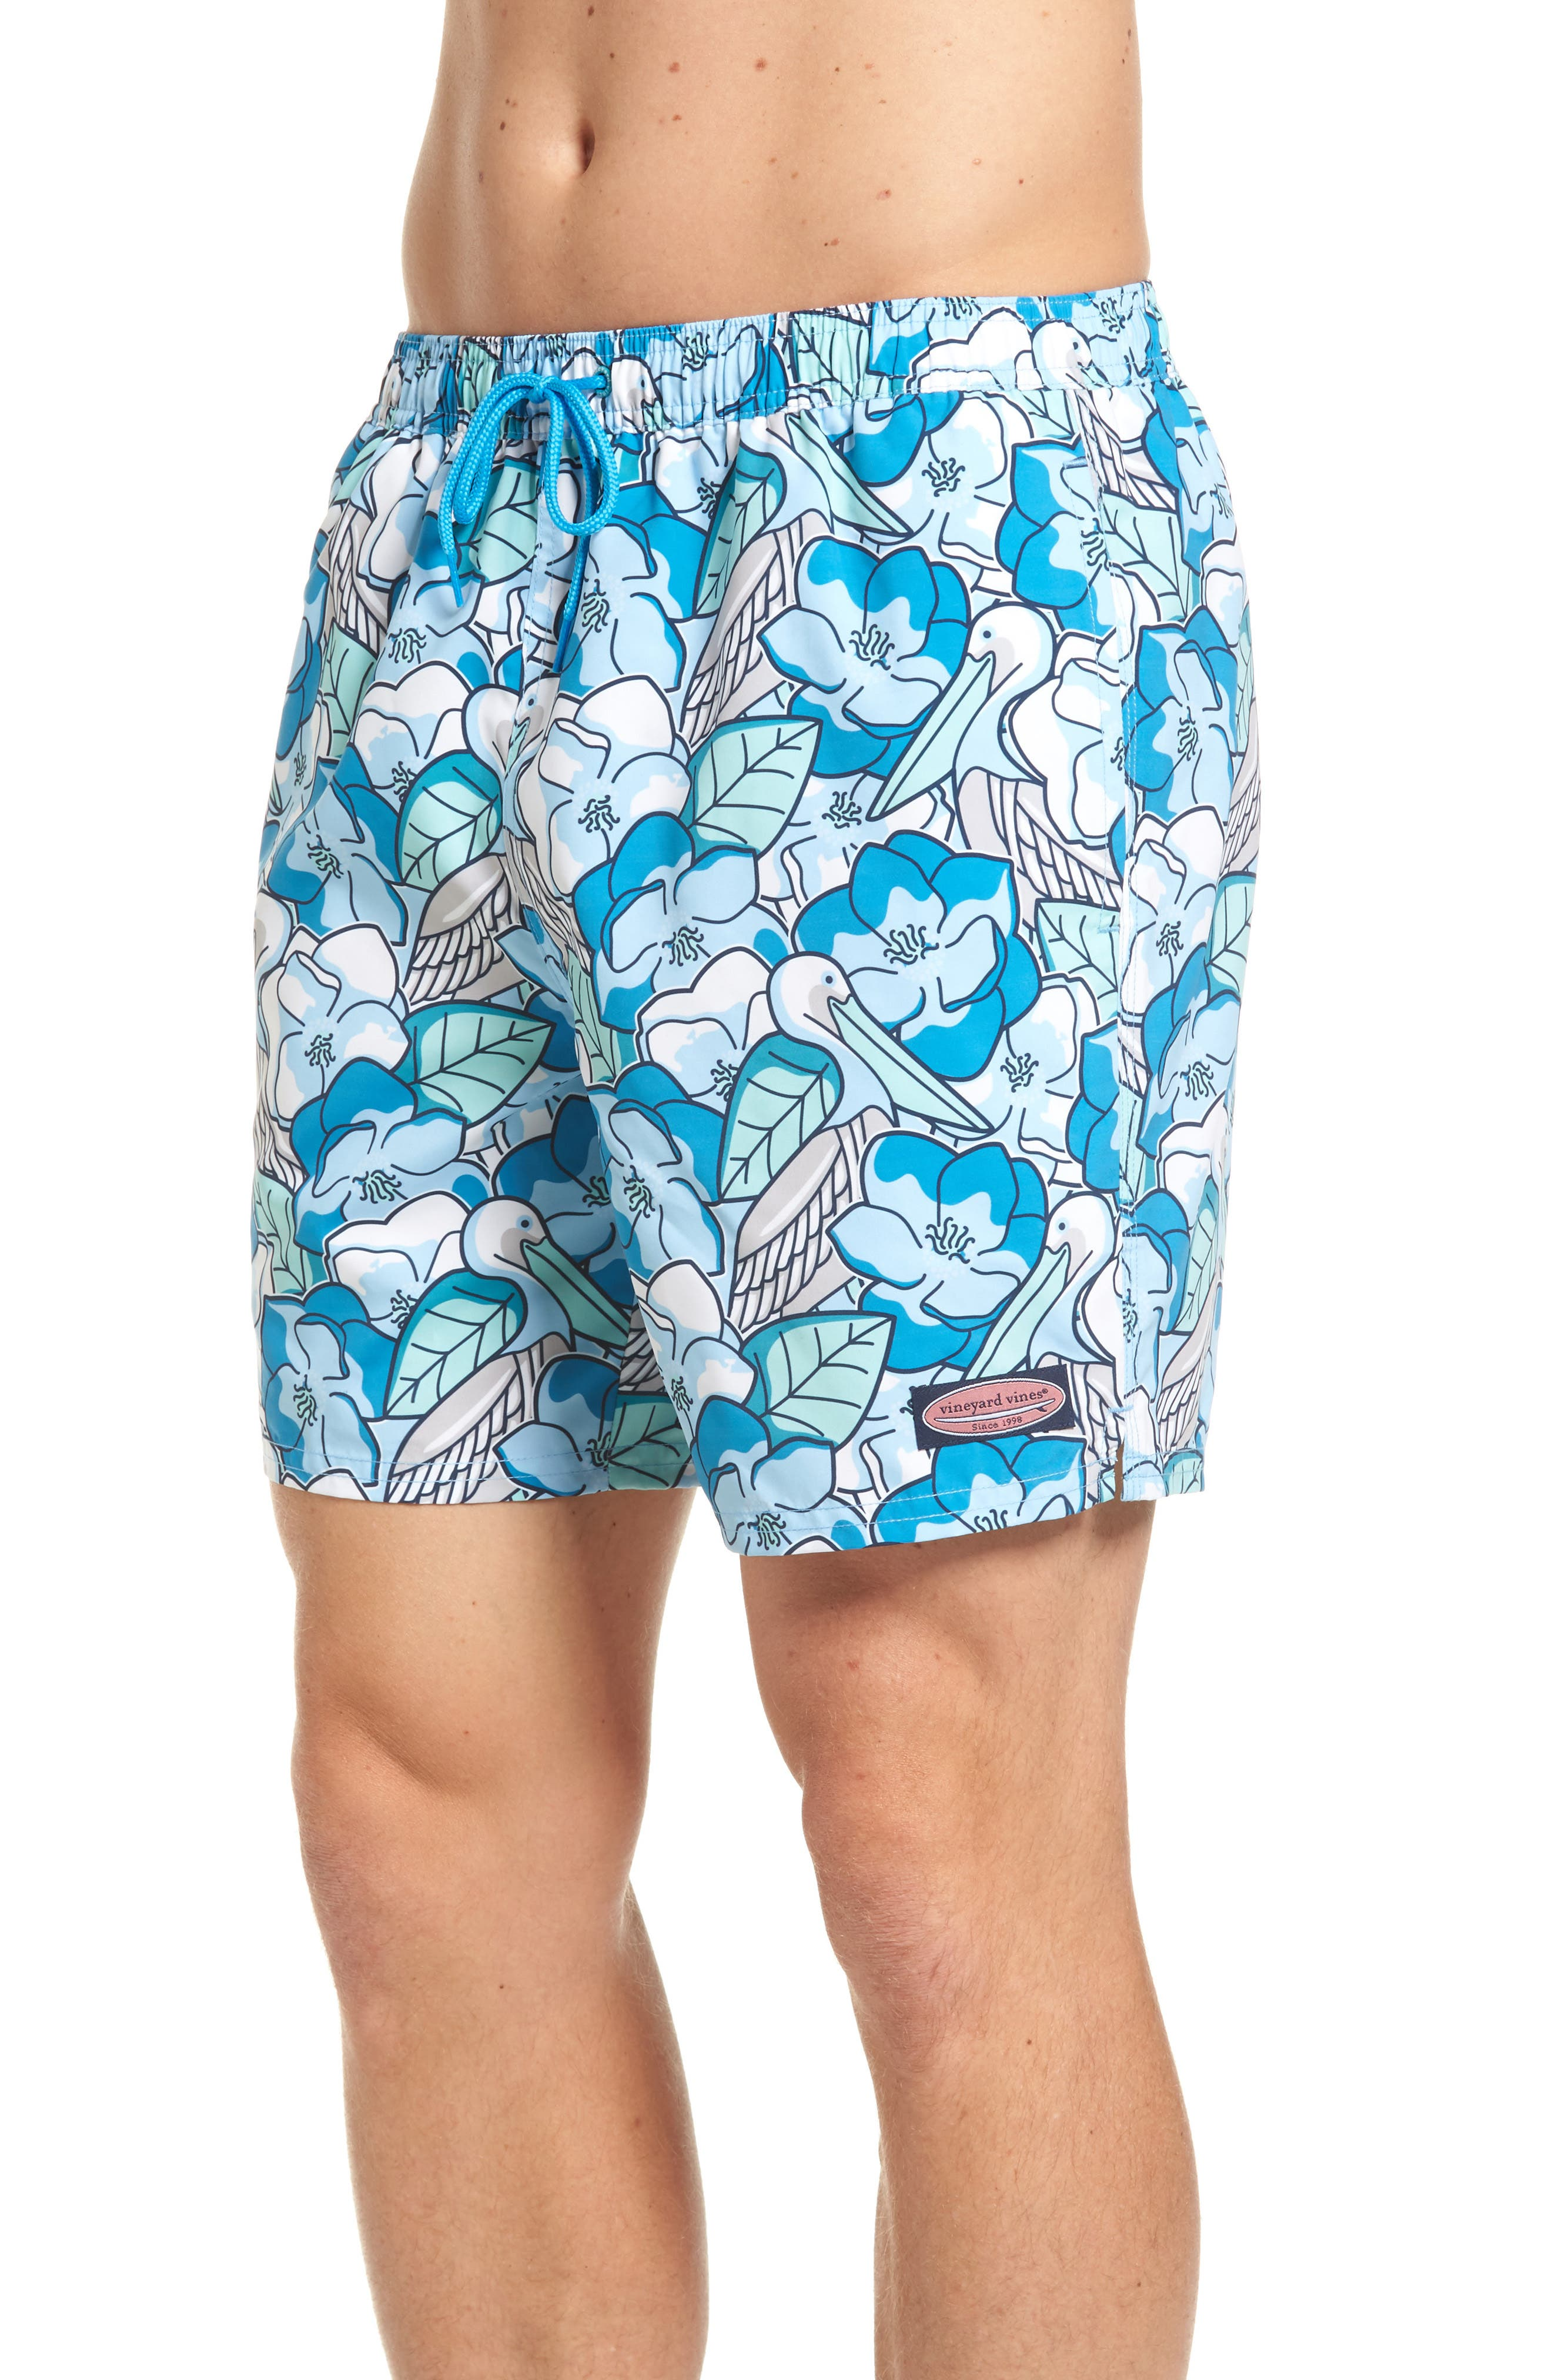 Pelican Magnolias Chappy Swim Trunks,                             Alternate thumbnail 3, color,                             413